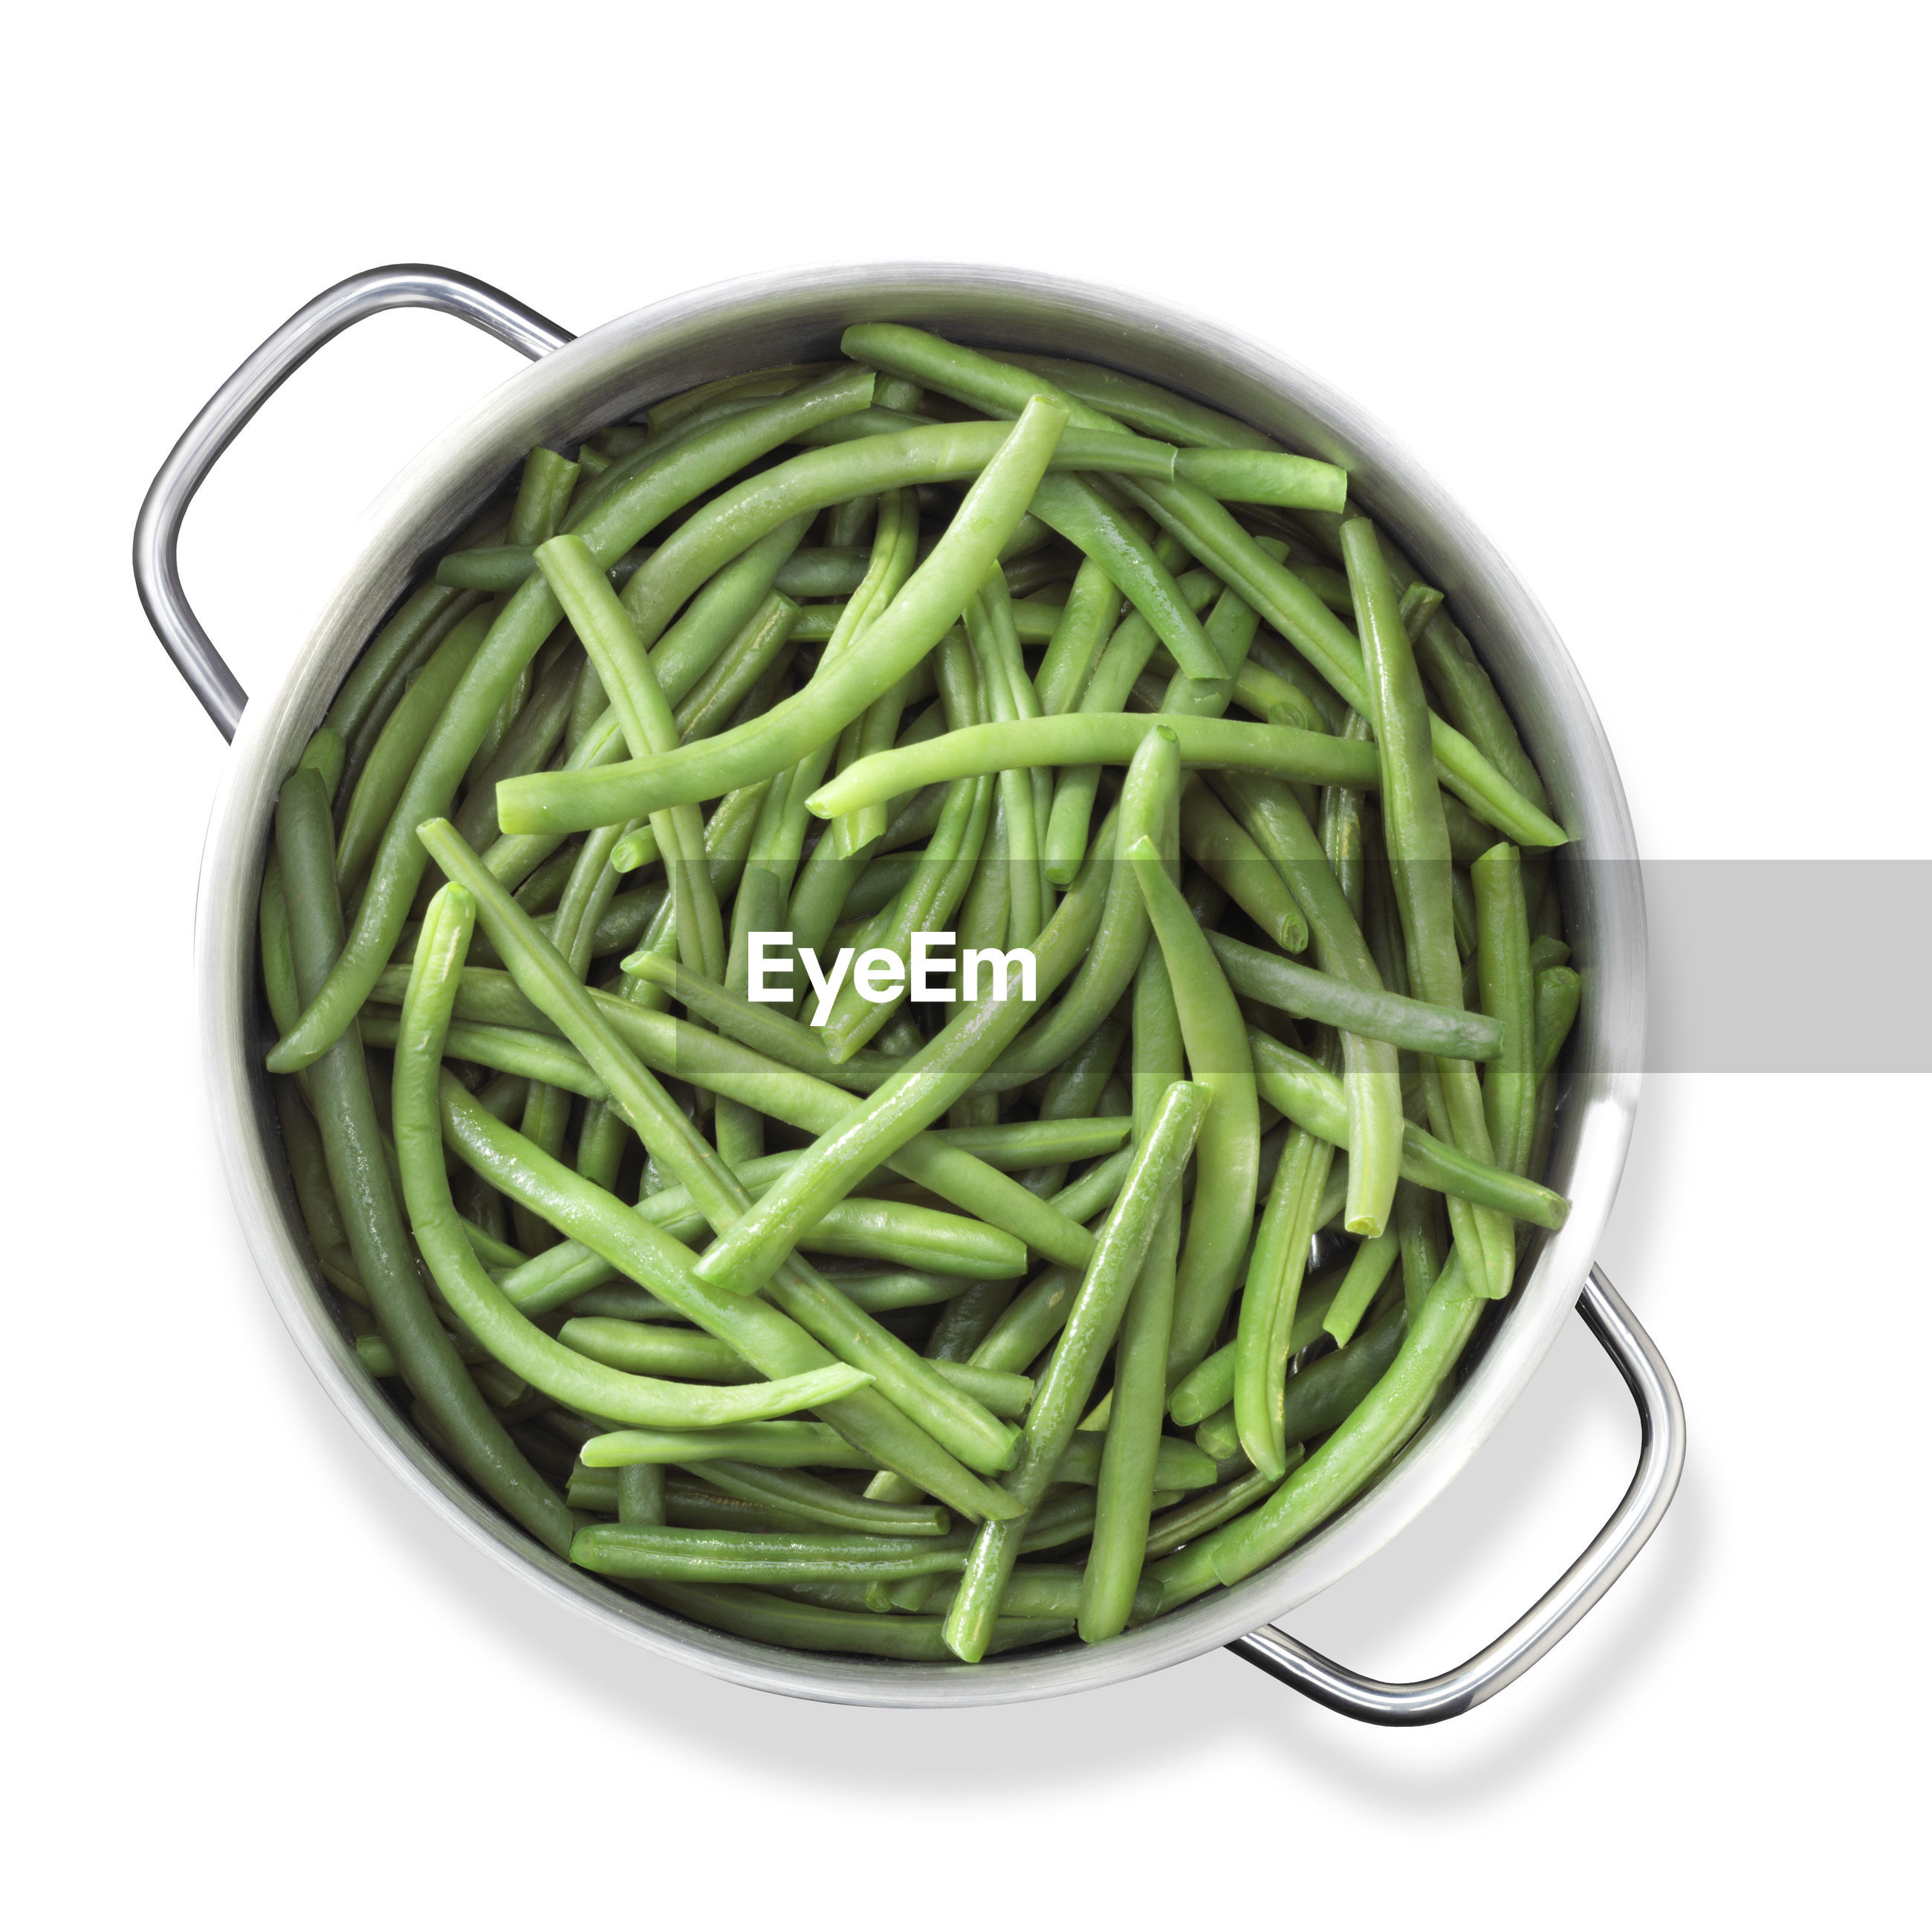 Directly above shot of green beans in container on white background